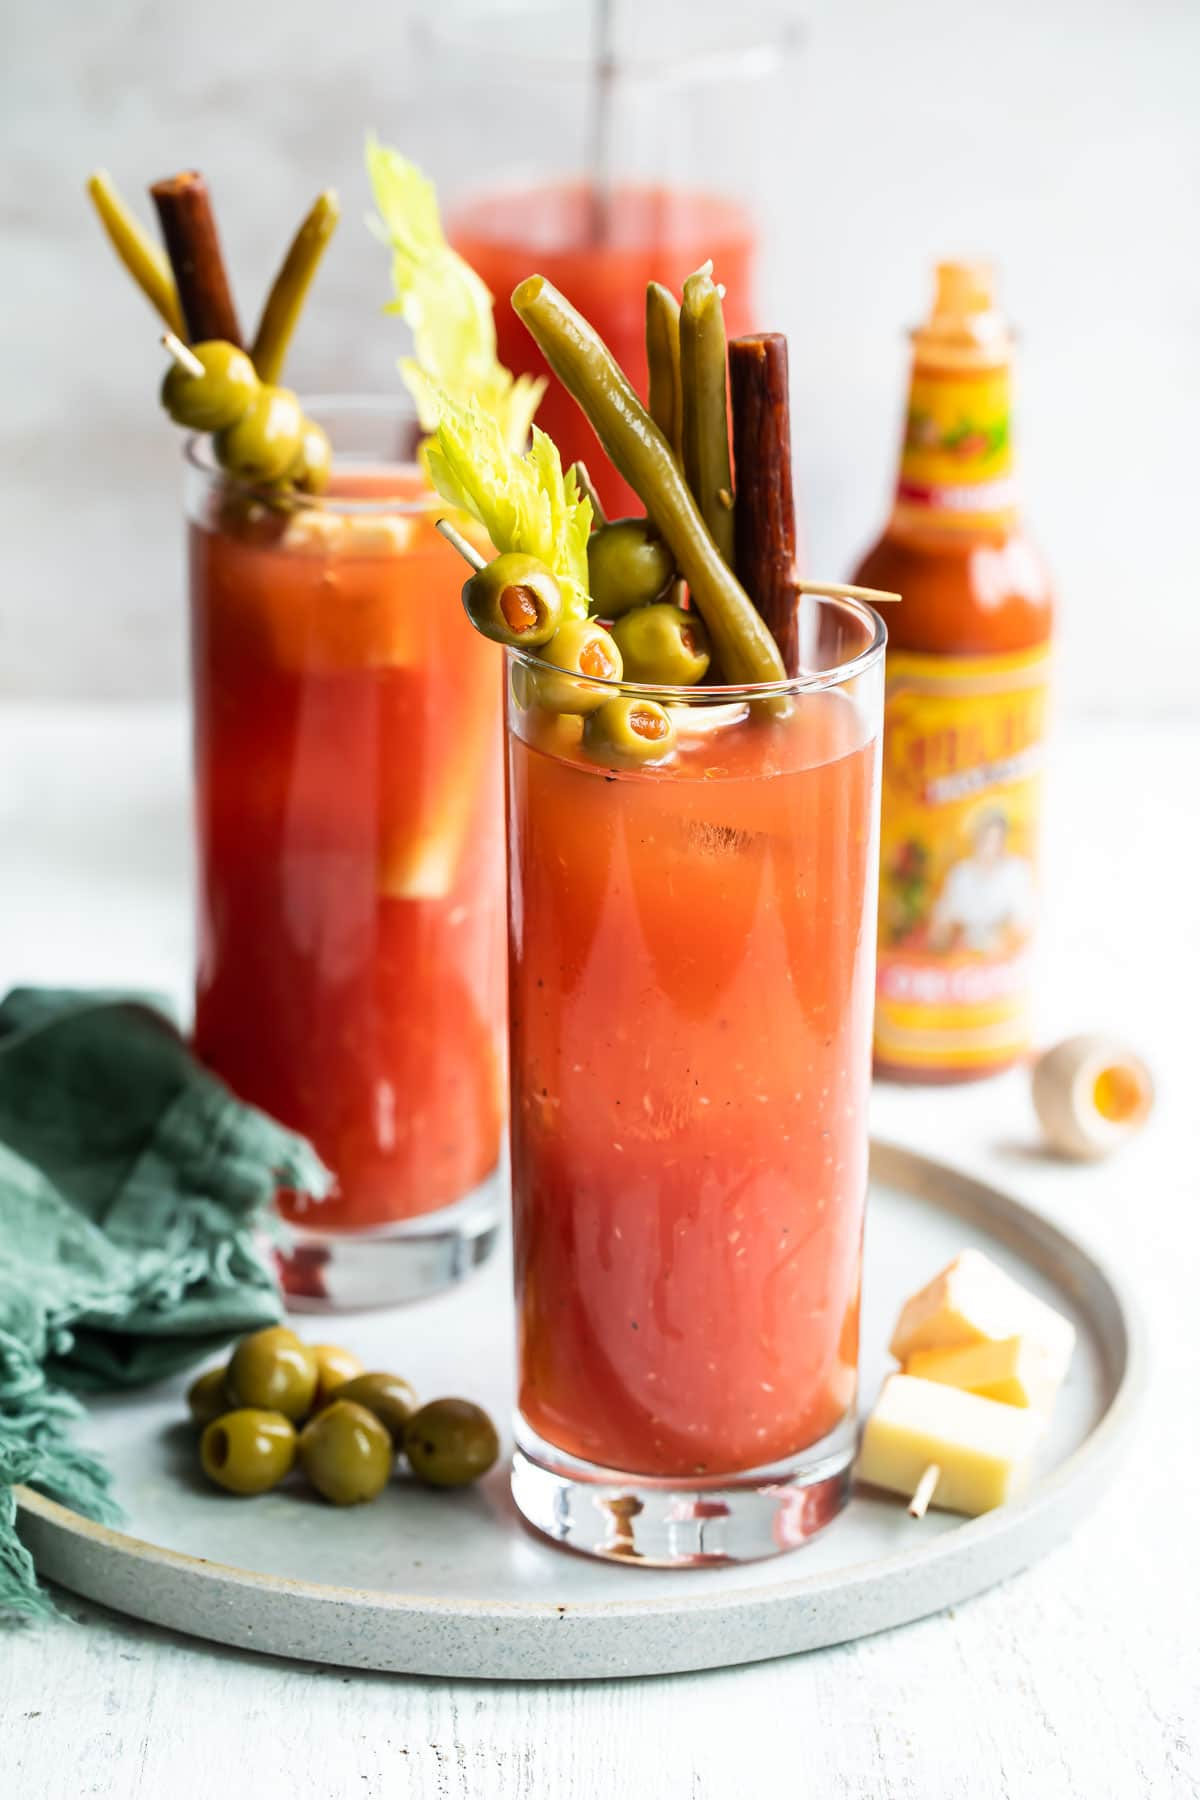 Two bloody marys with garnishes.